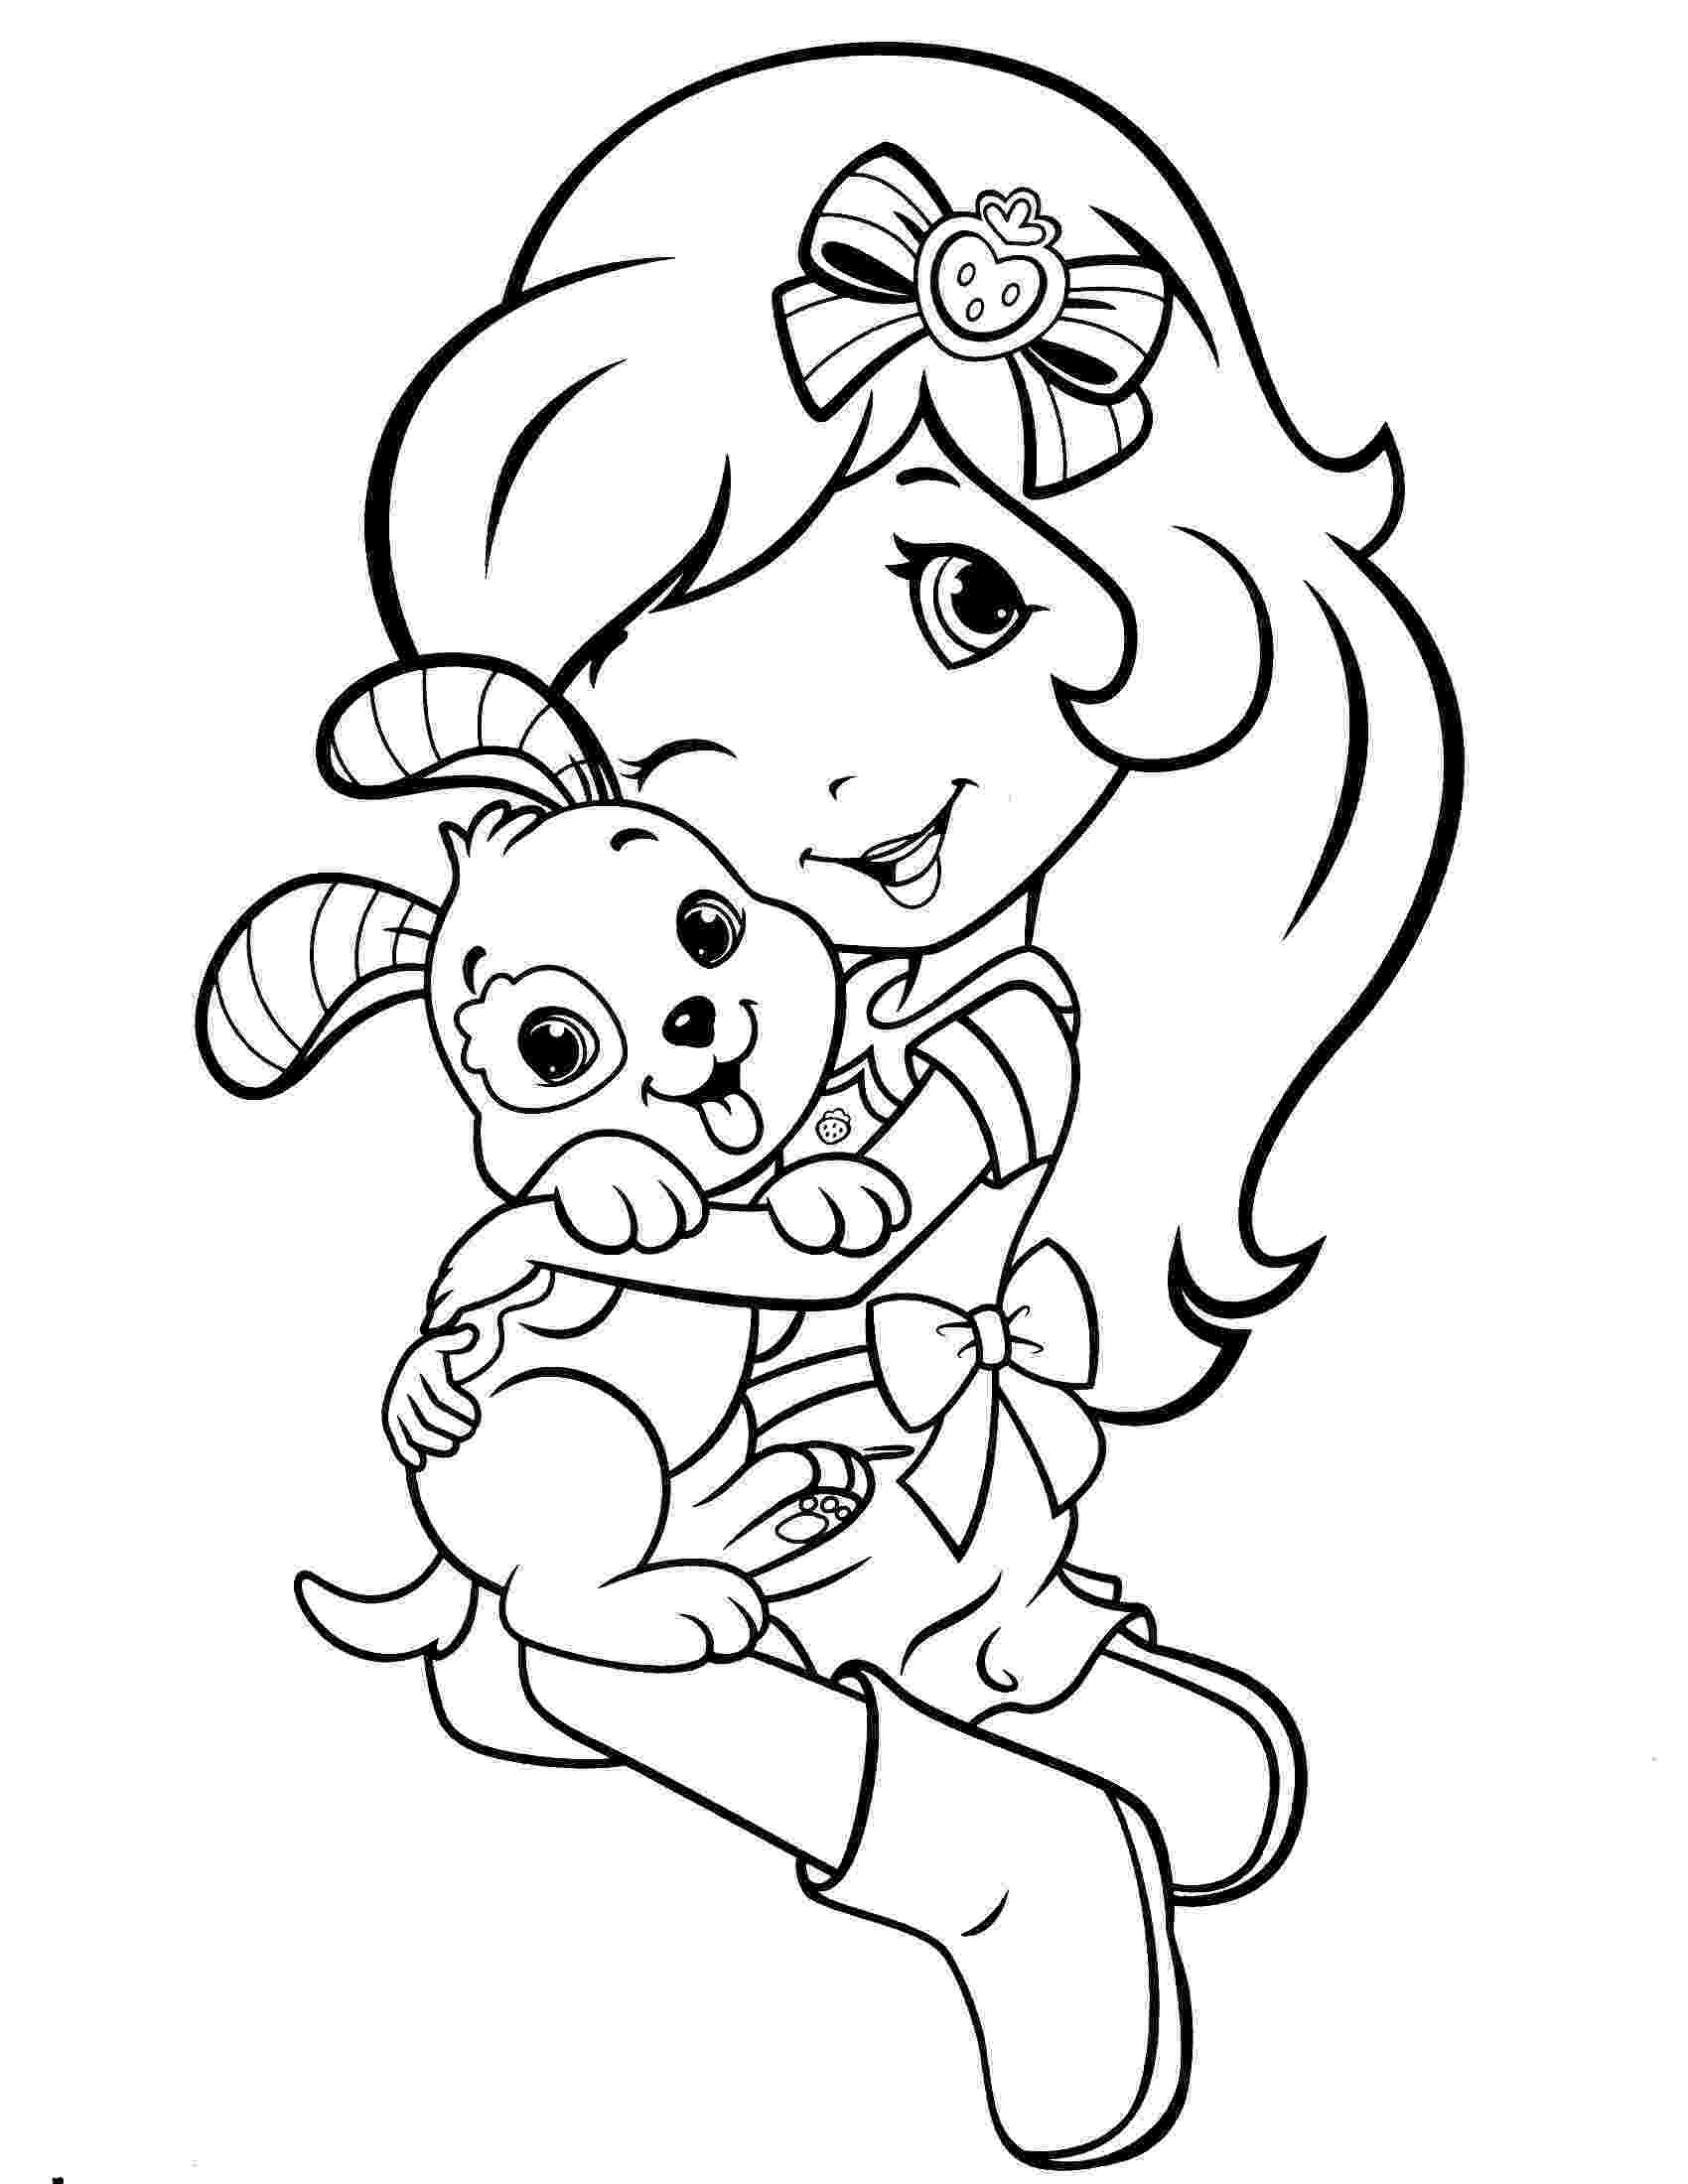 pictures of strawberry shortcake strawberry shortcake printables strawberry shortcake strawberry pictures of shortcake